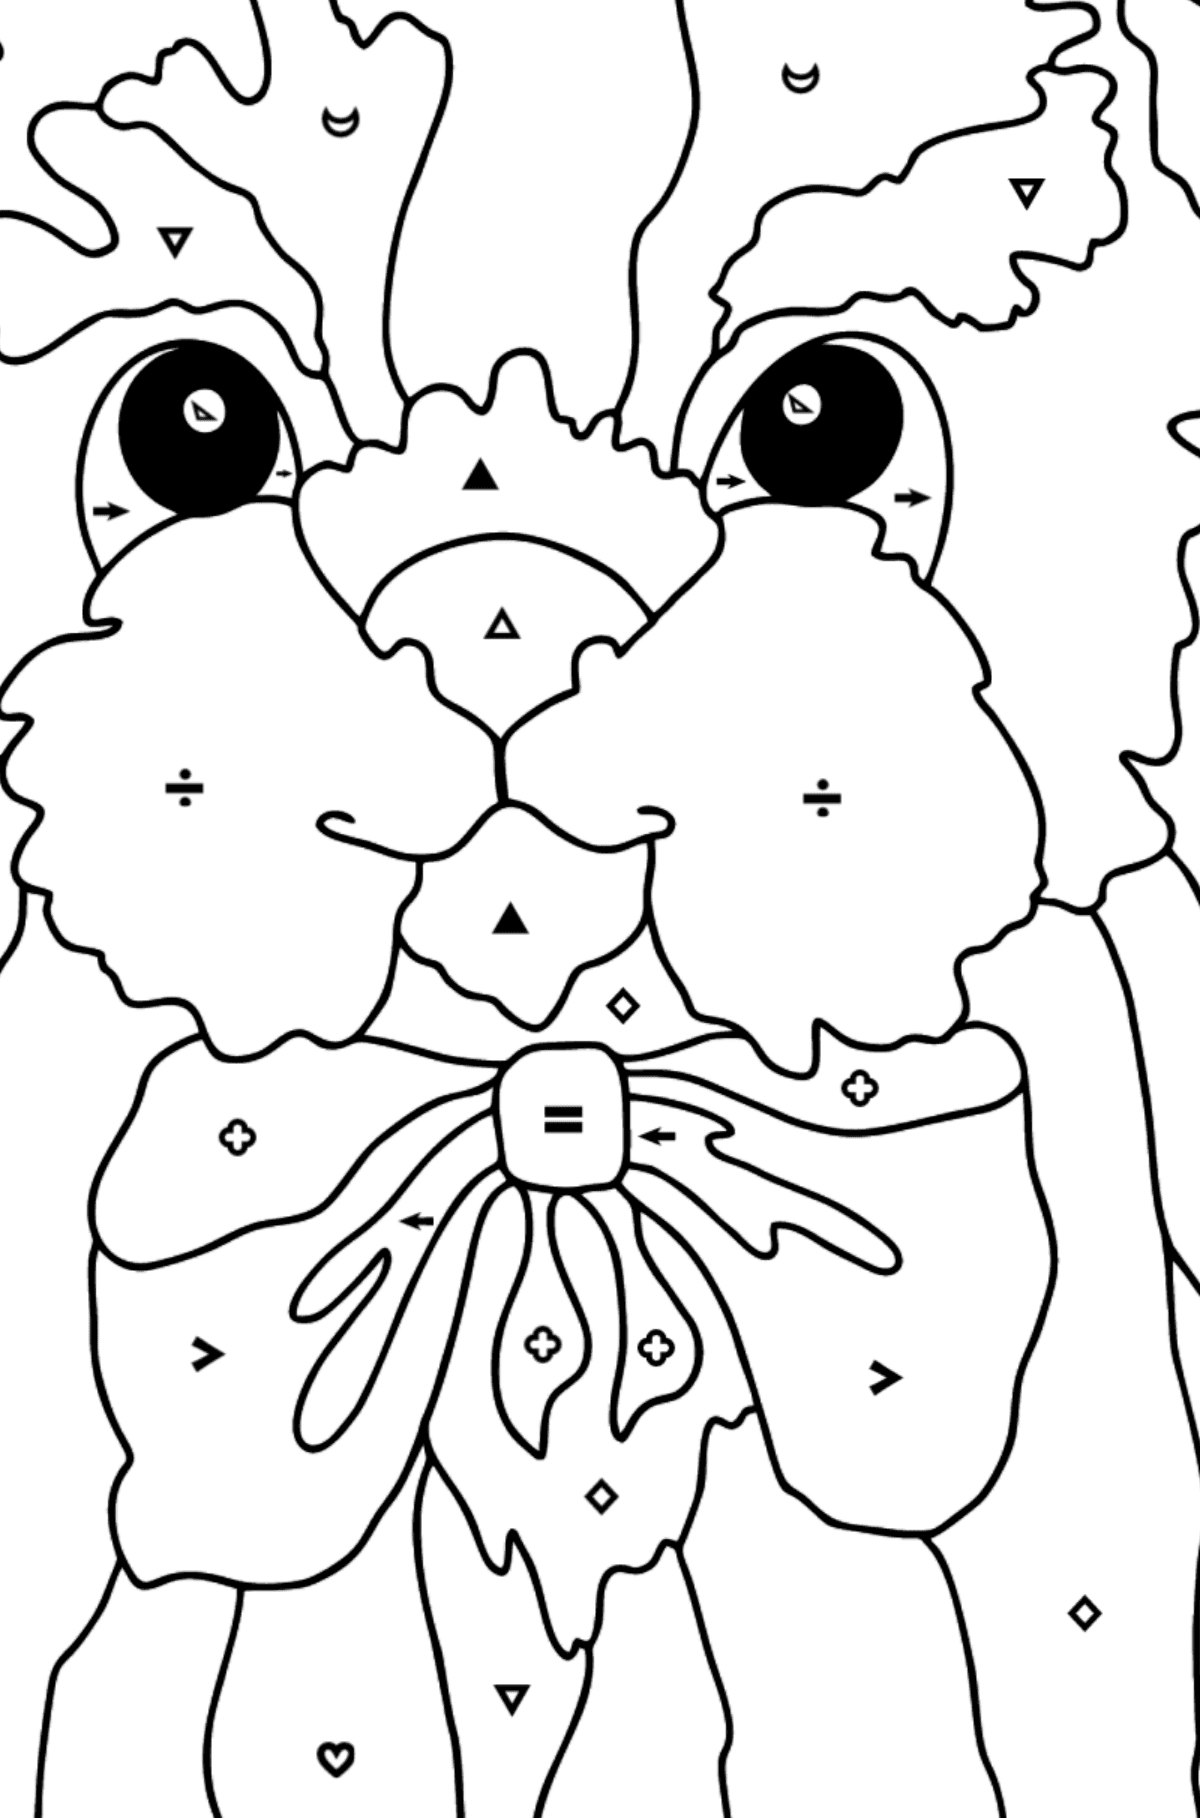 Coloring Page - A Dog with a Bow - Coloring by Symbols and Geometric Shapes for Kids